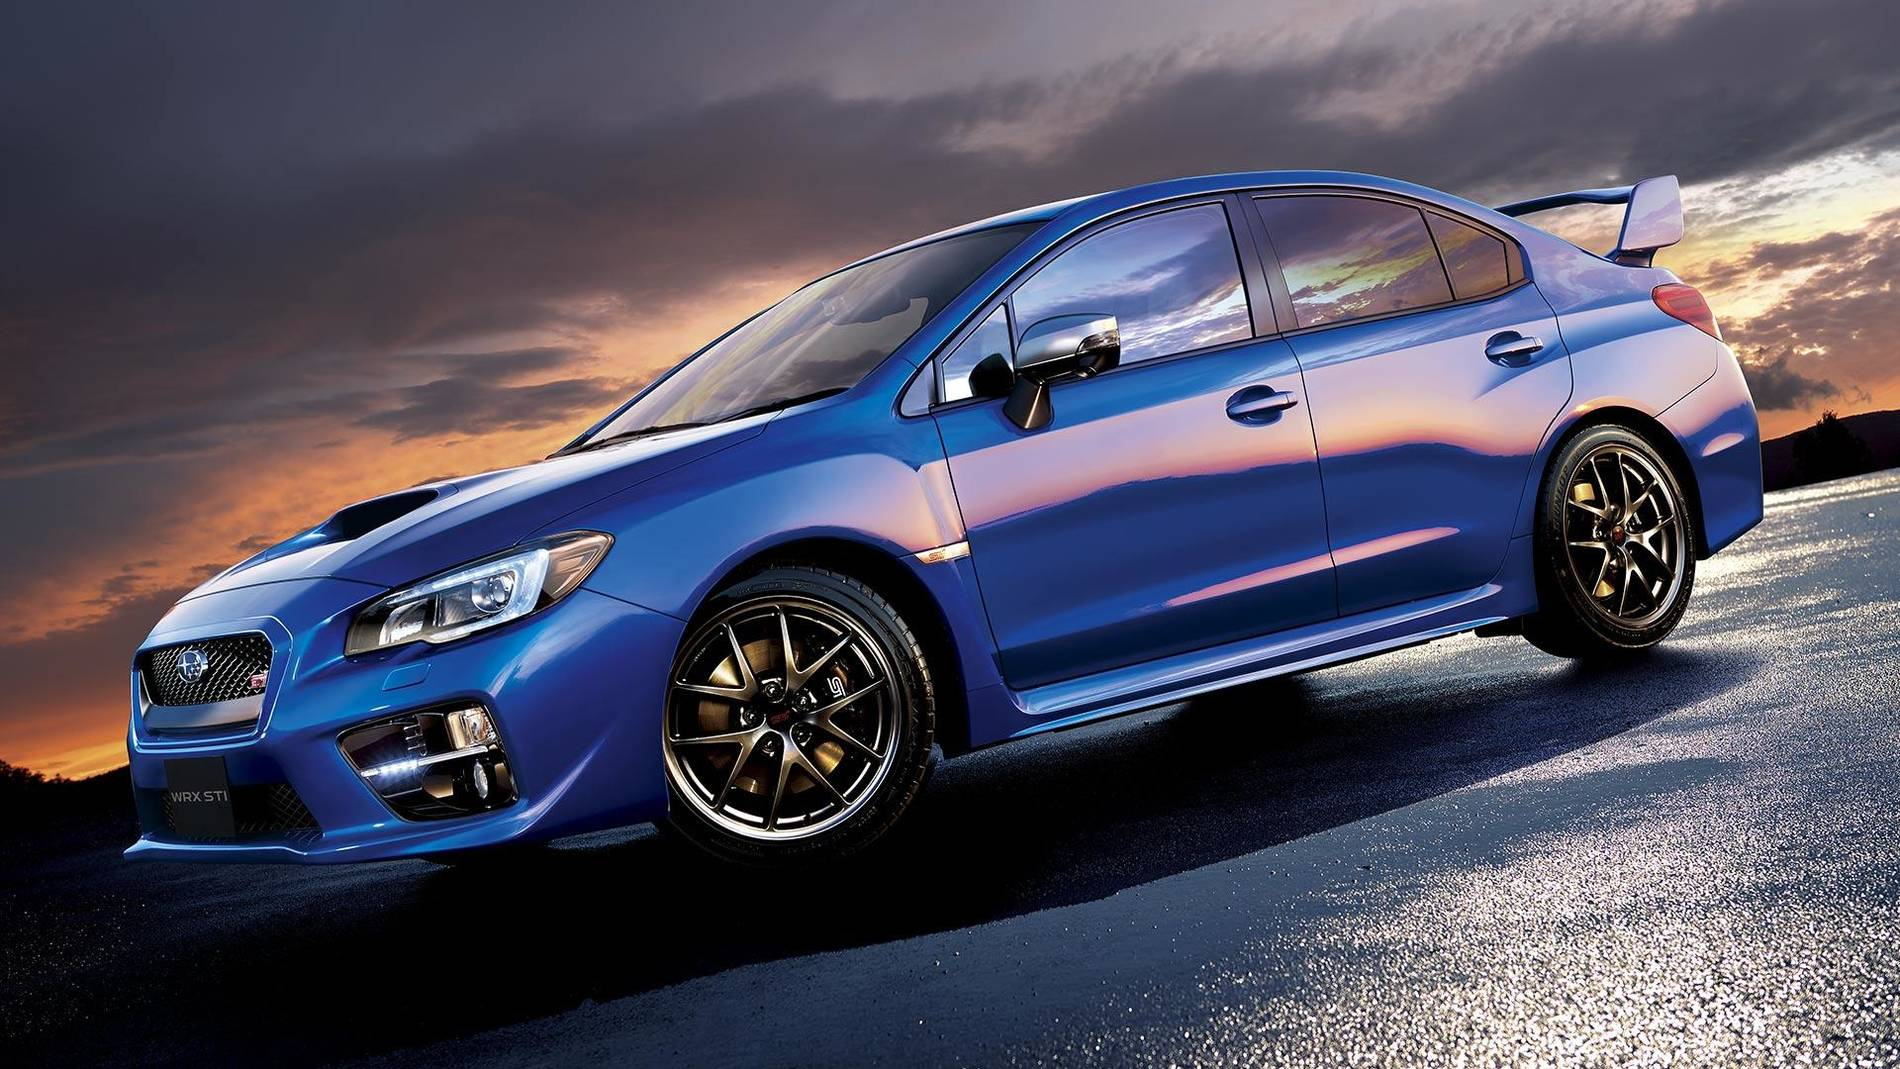 New Subaru WRX Sti Wallpaper, image, picture